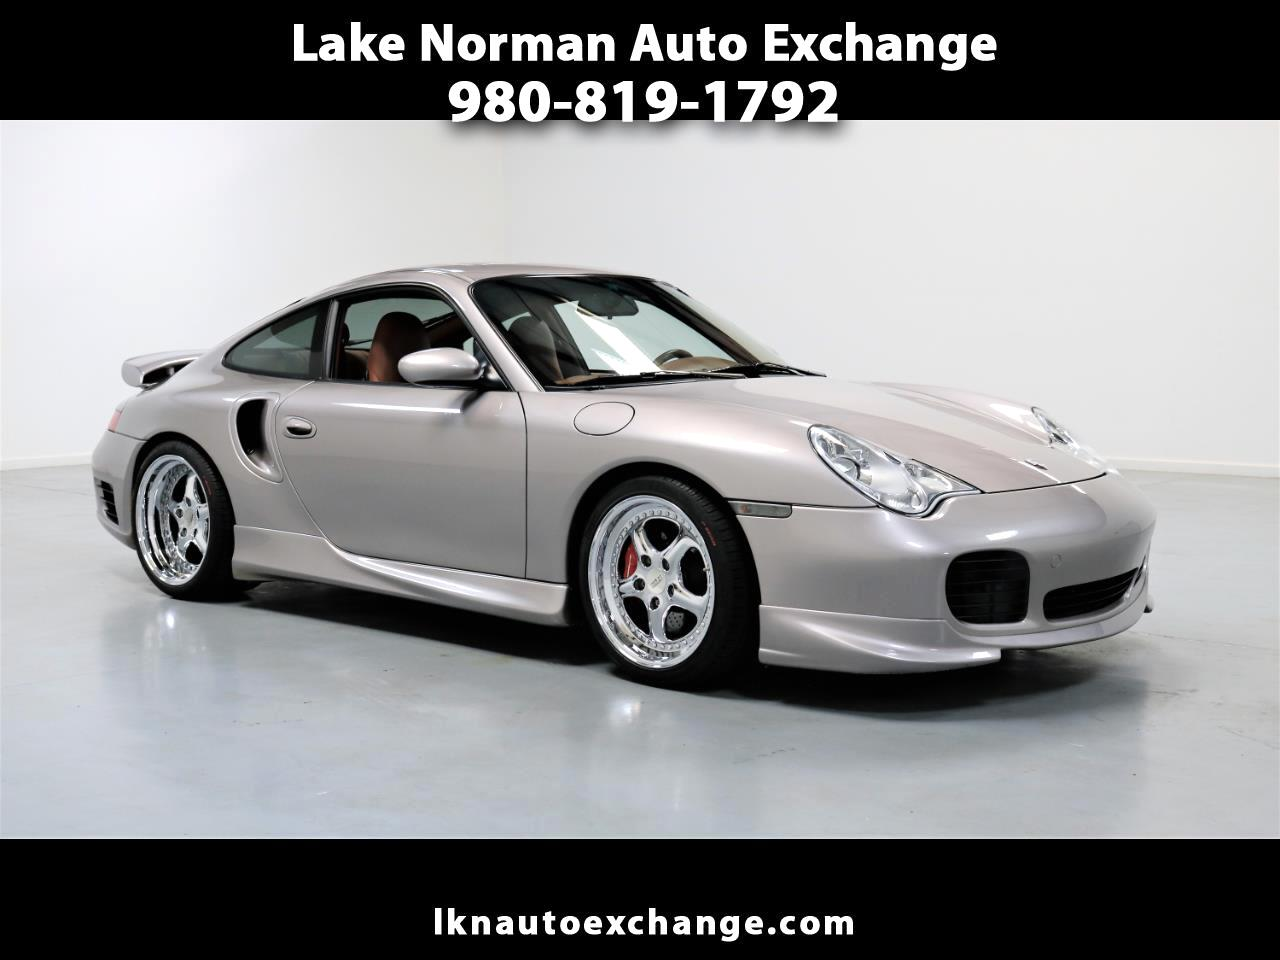 2001 Porsche 911 Carrera 2dr Carrera Turbo 6-Spd Manual